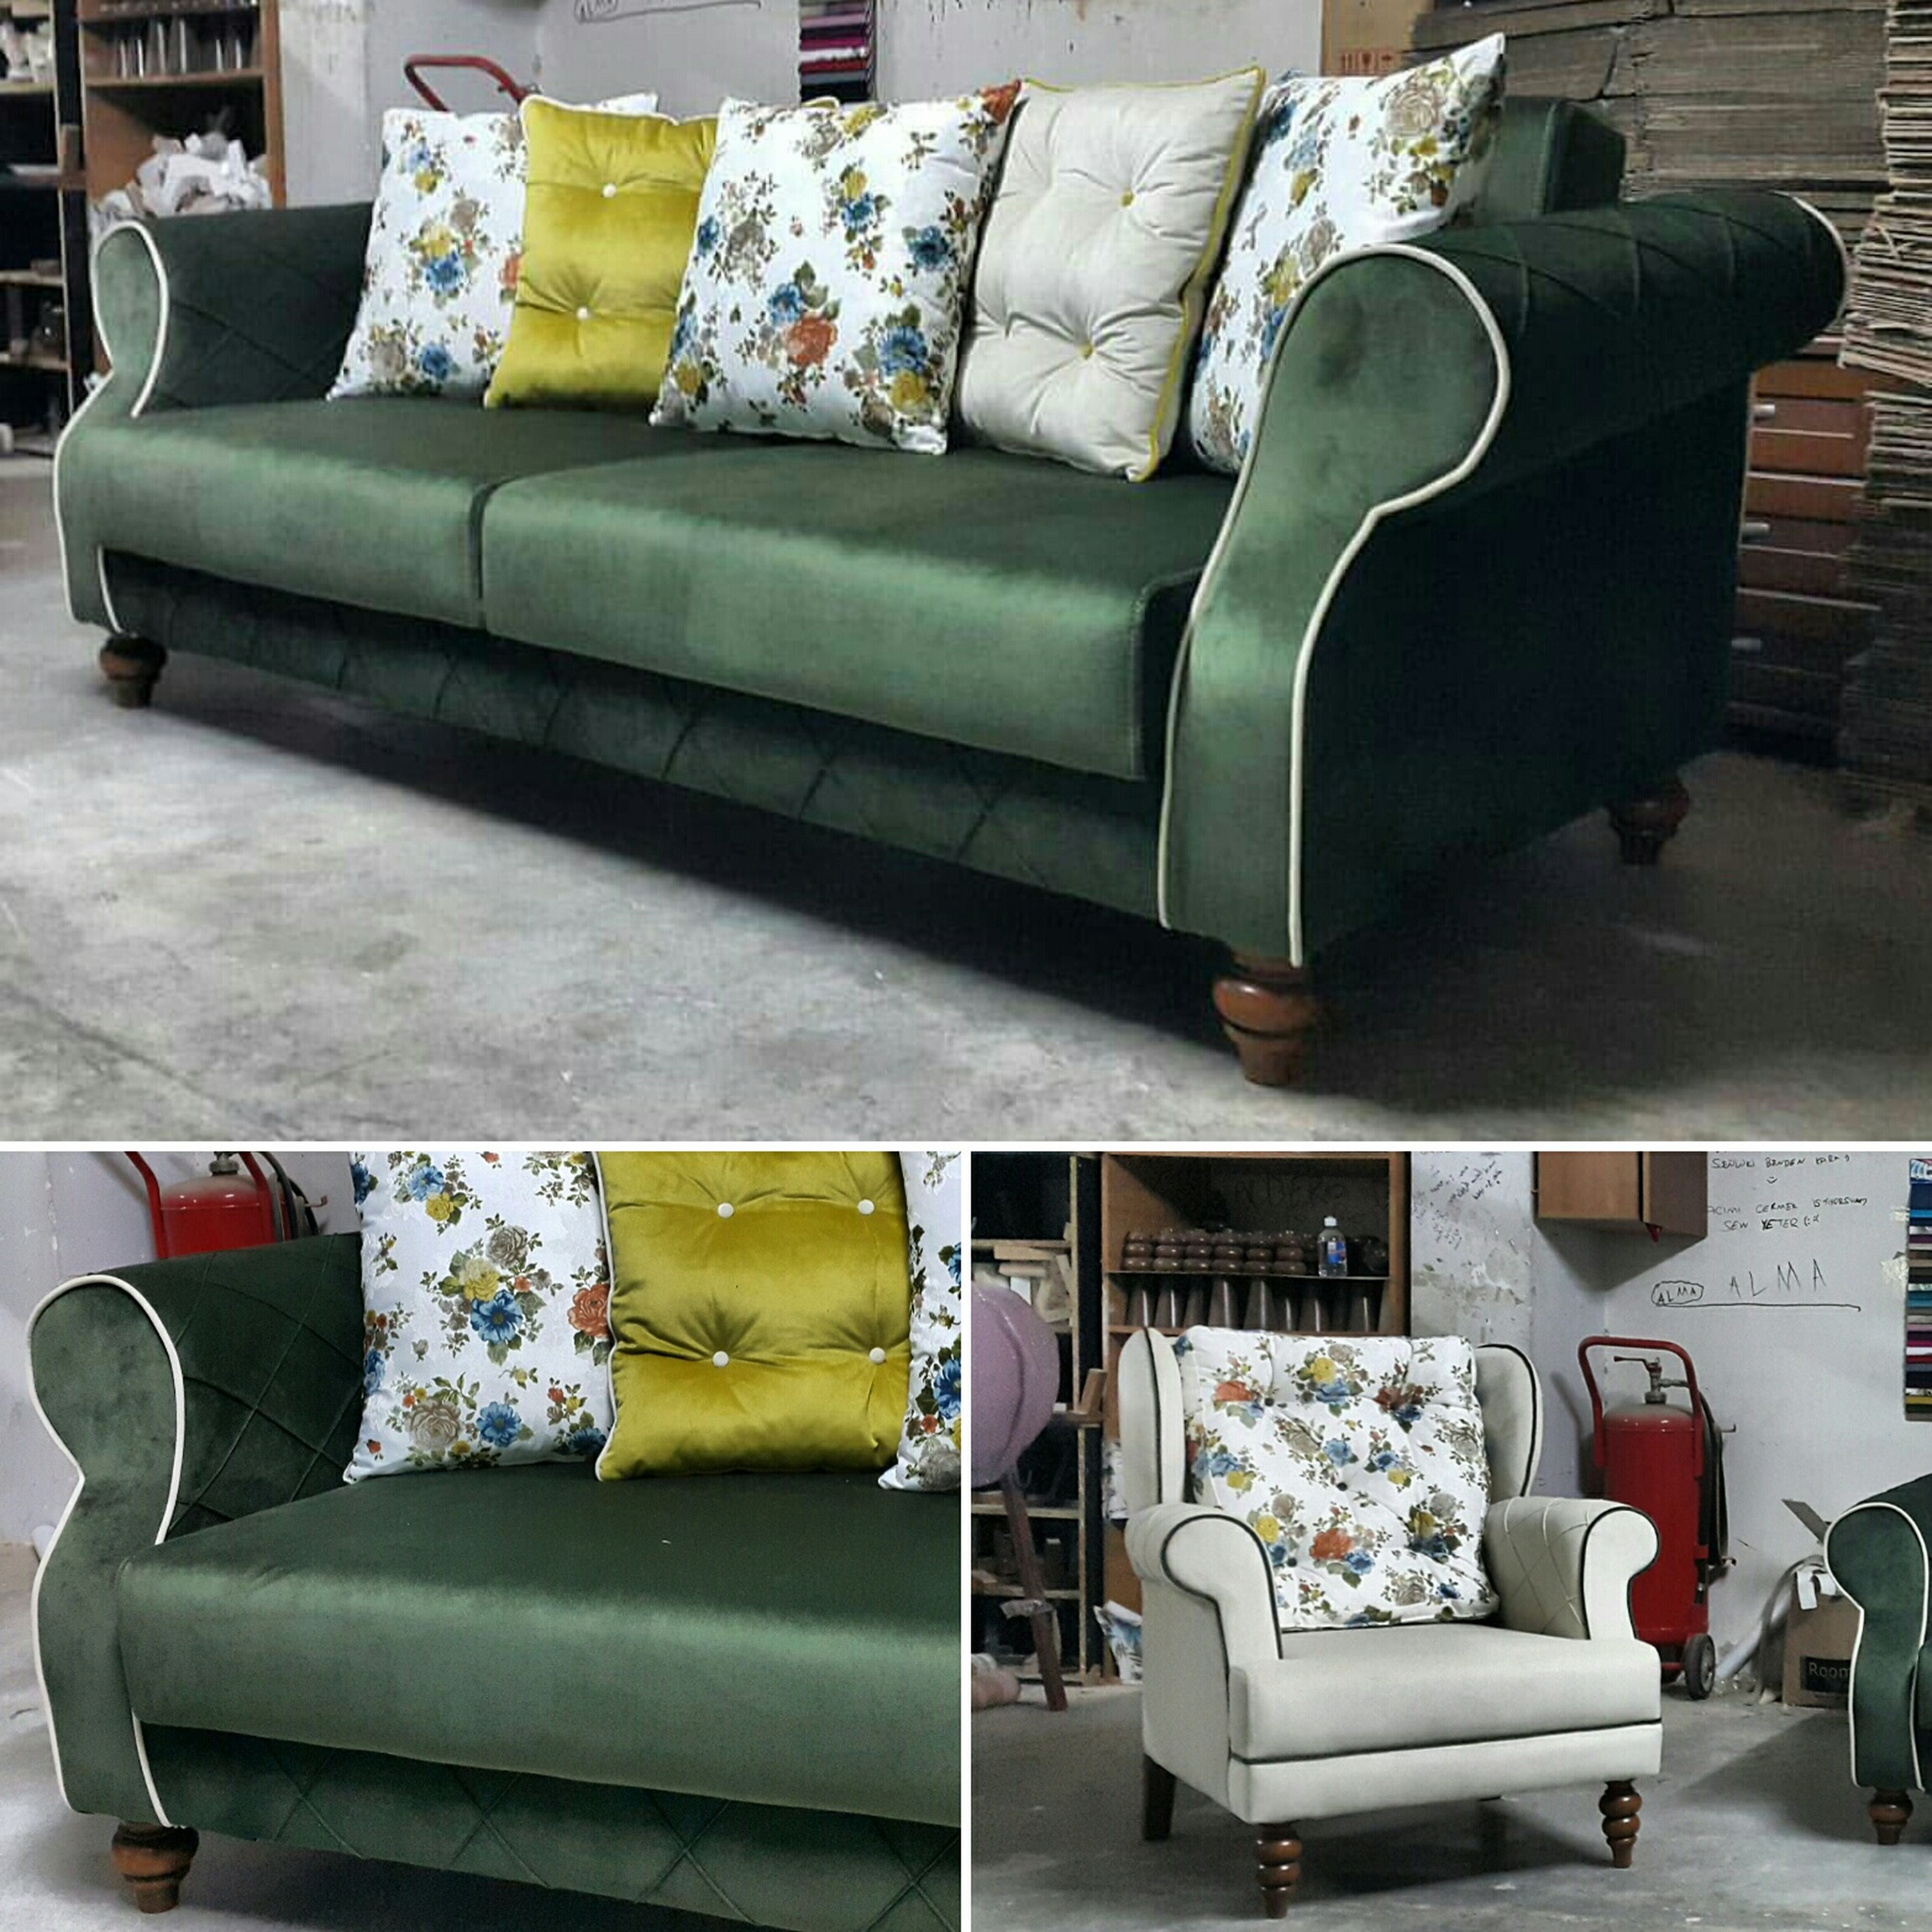 Turkish Designer Designer Goods Handmade By Me Sofa Collection Armchair Philosophy Check This Out Interior Design In Adana